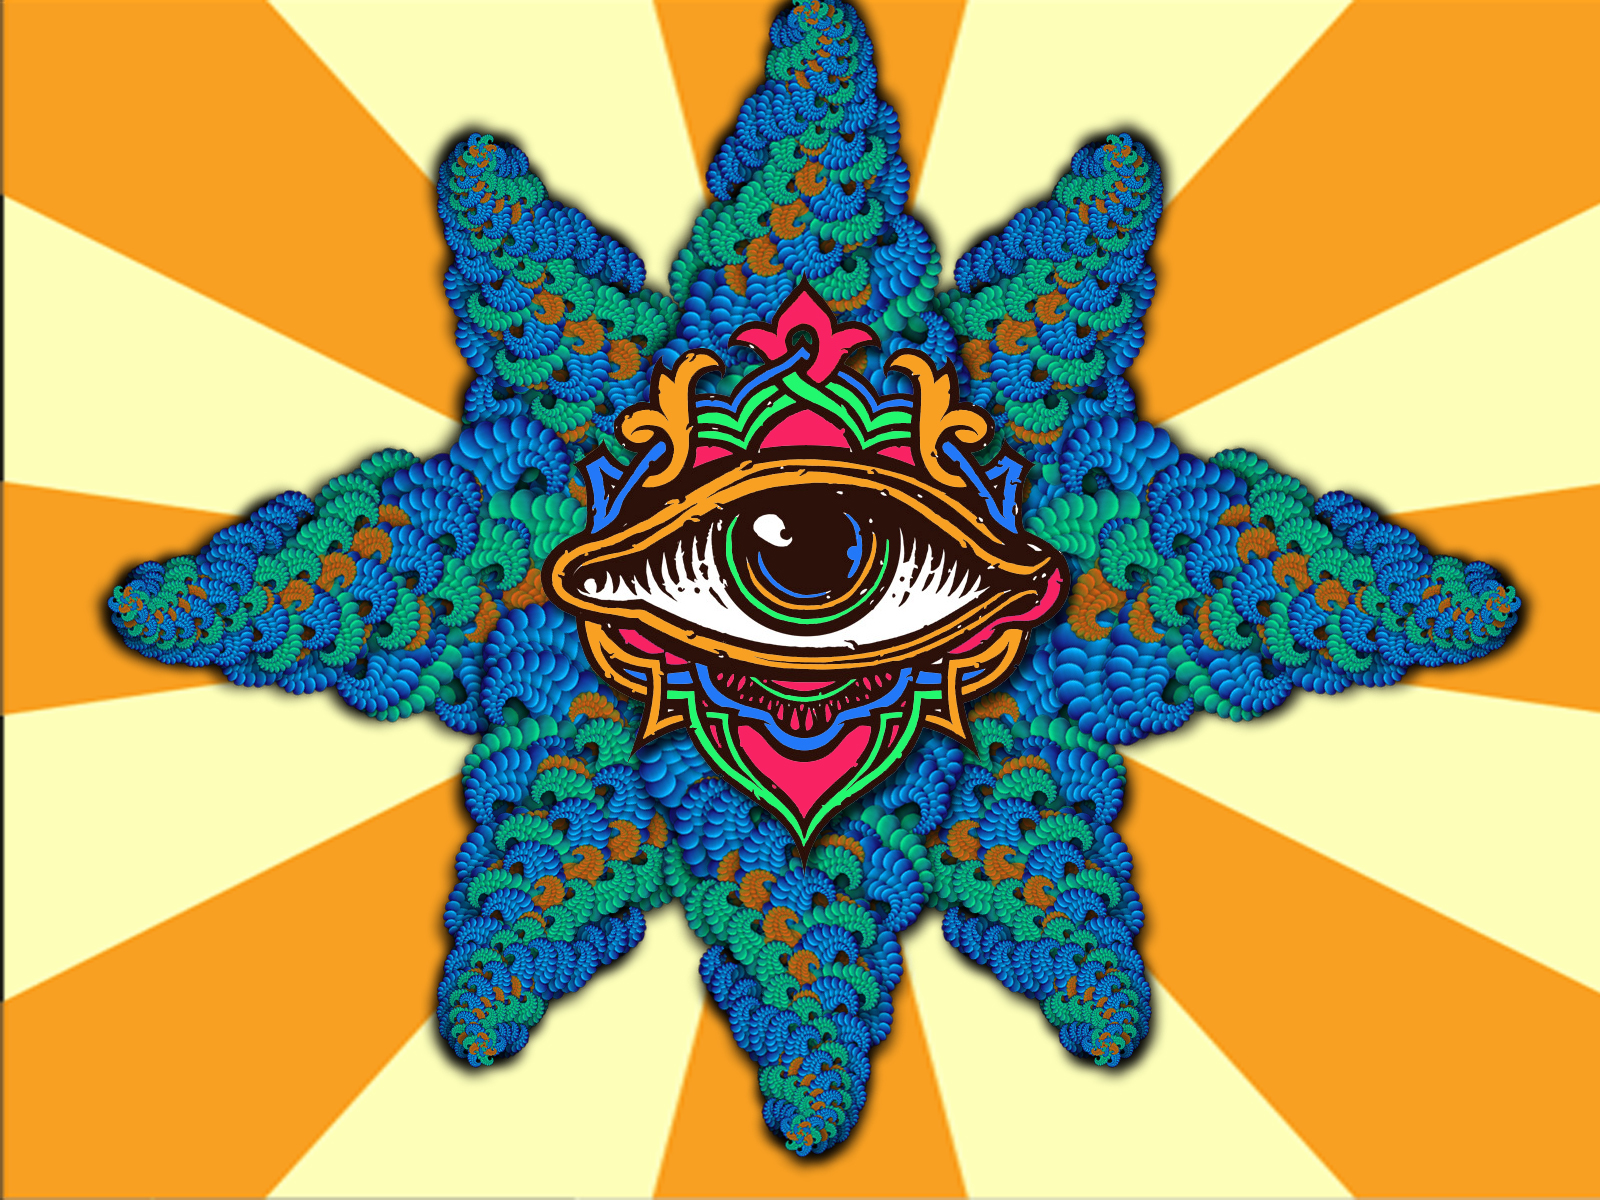 Trippy Wallpapers 5207 15390 15464 60824 203177 205917 Web 213467 215365